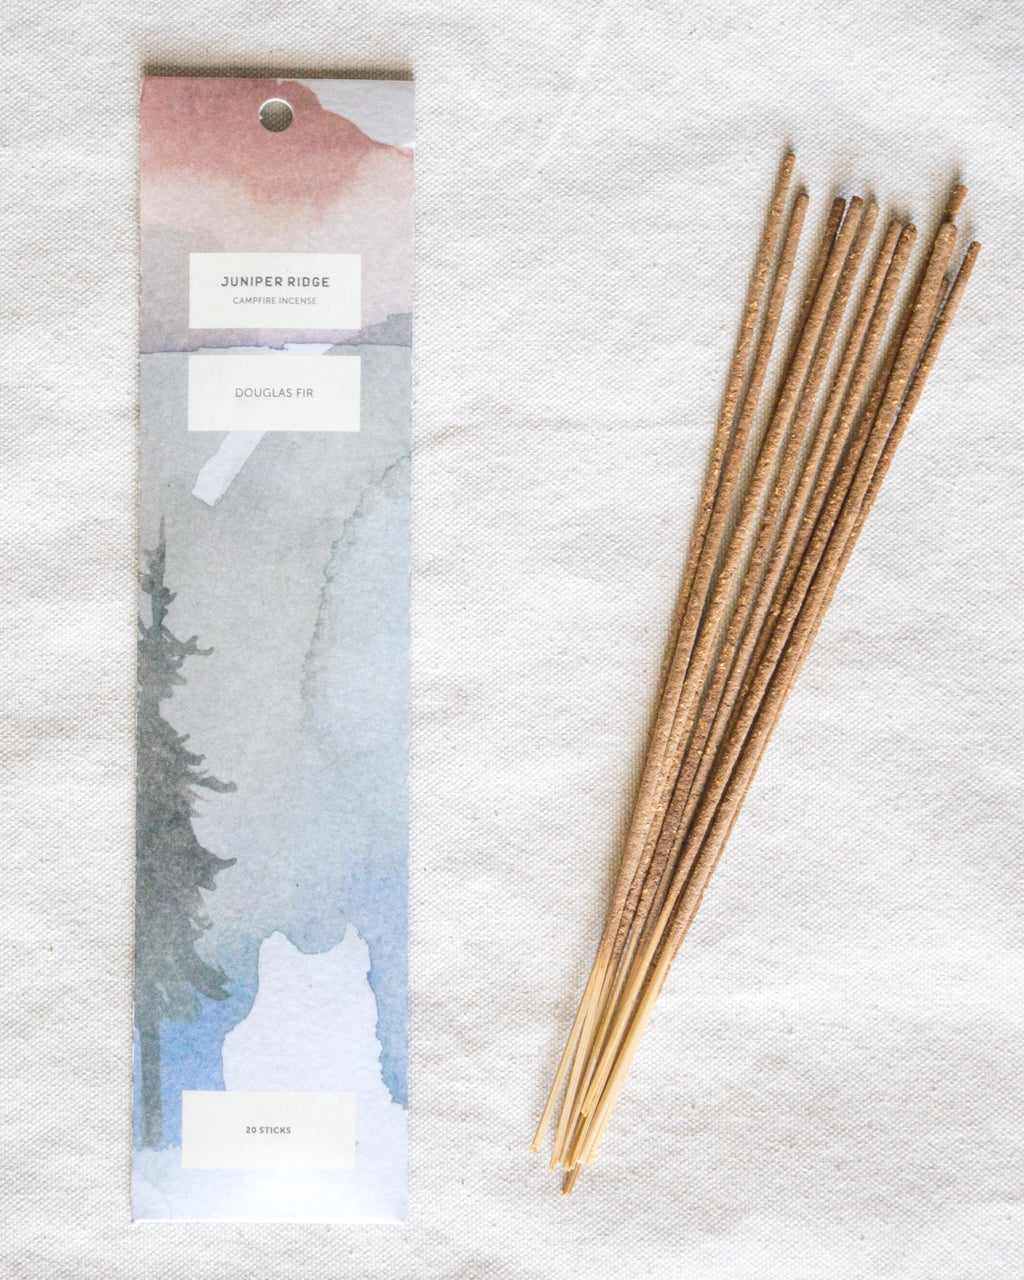 Douglas Fir | Campfire Incense